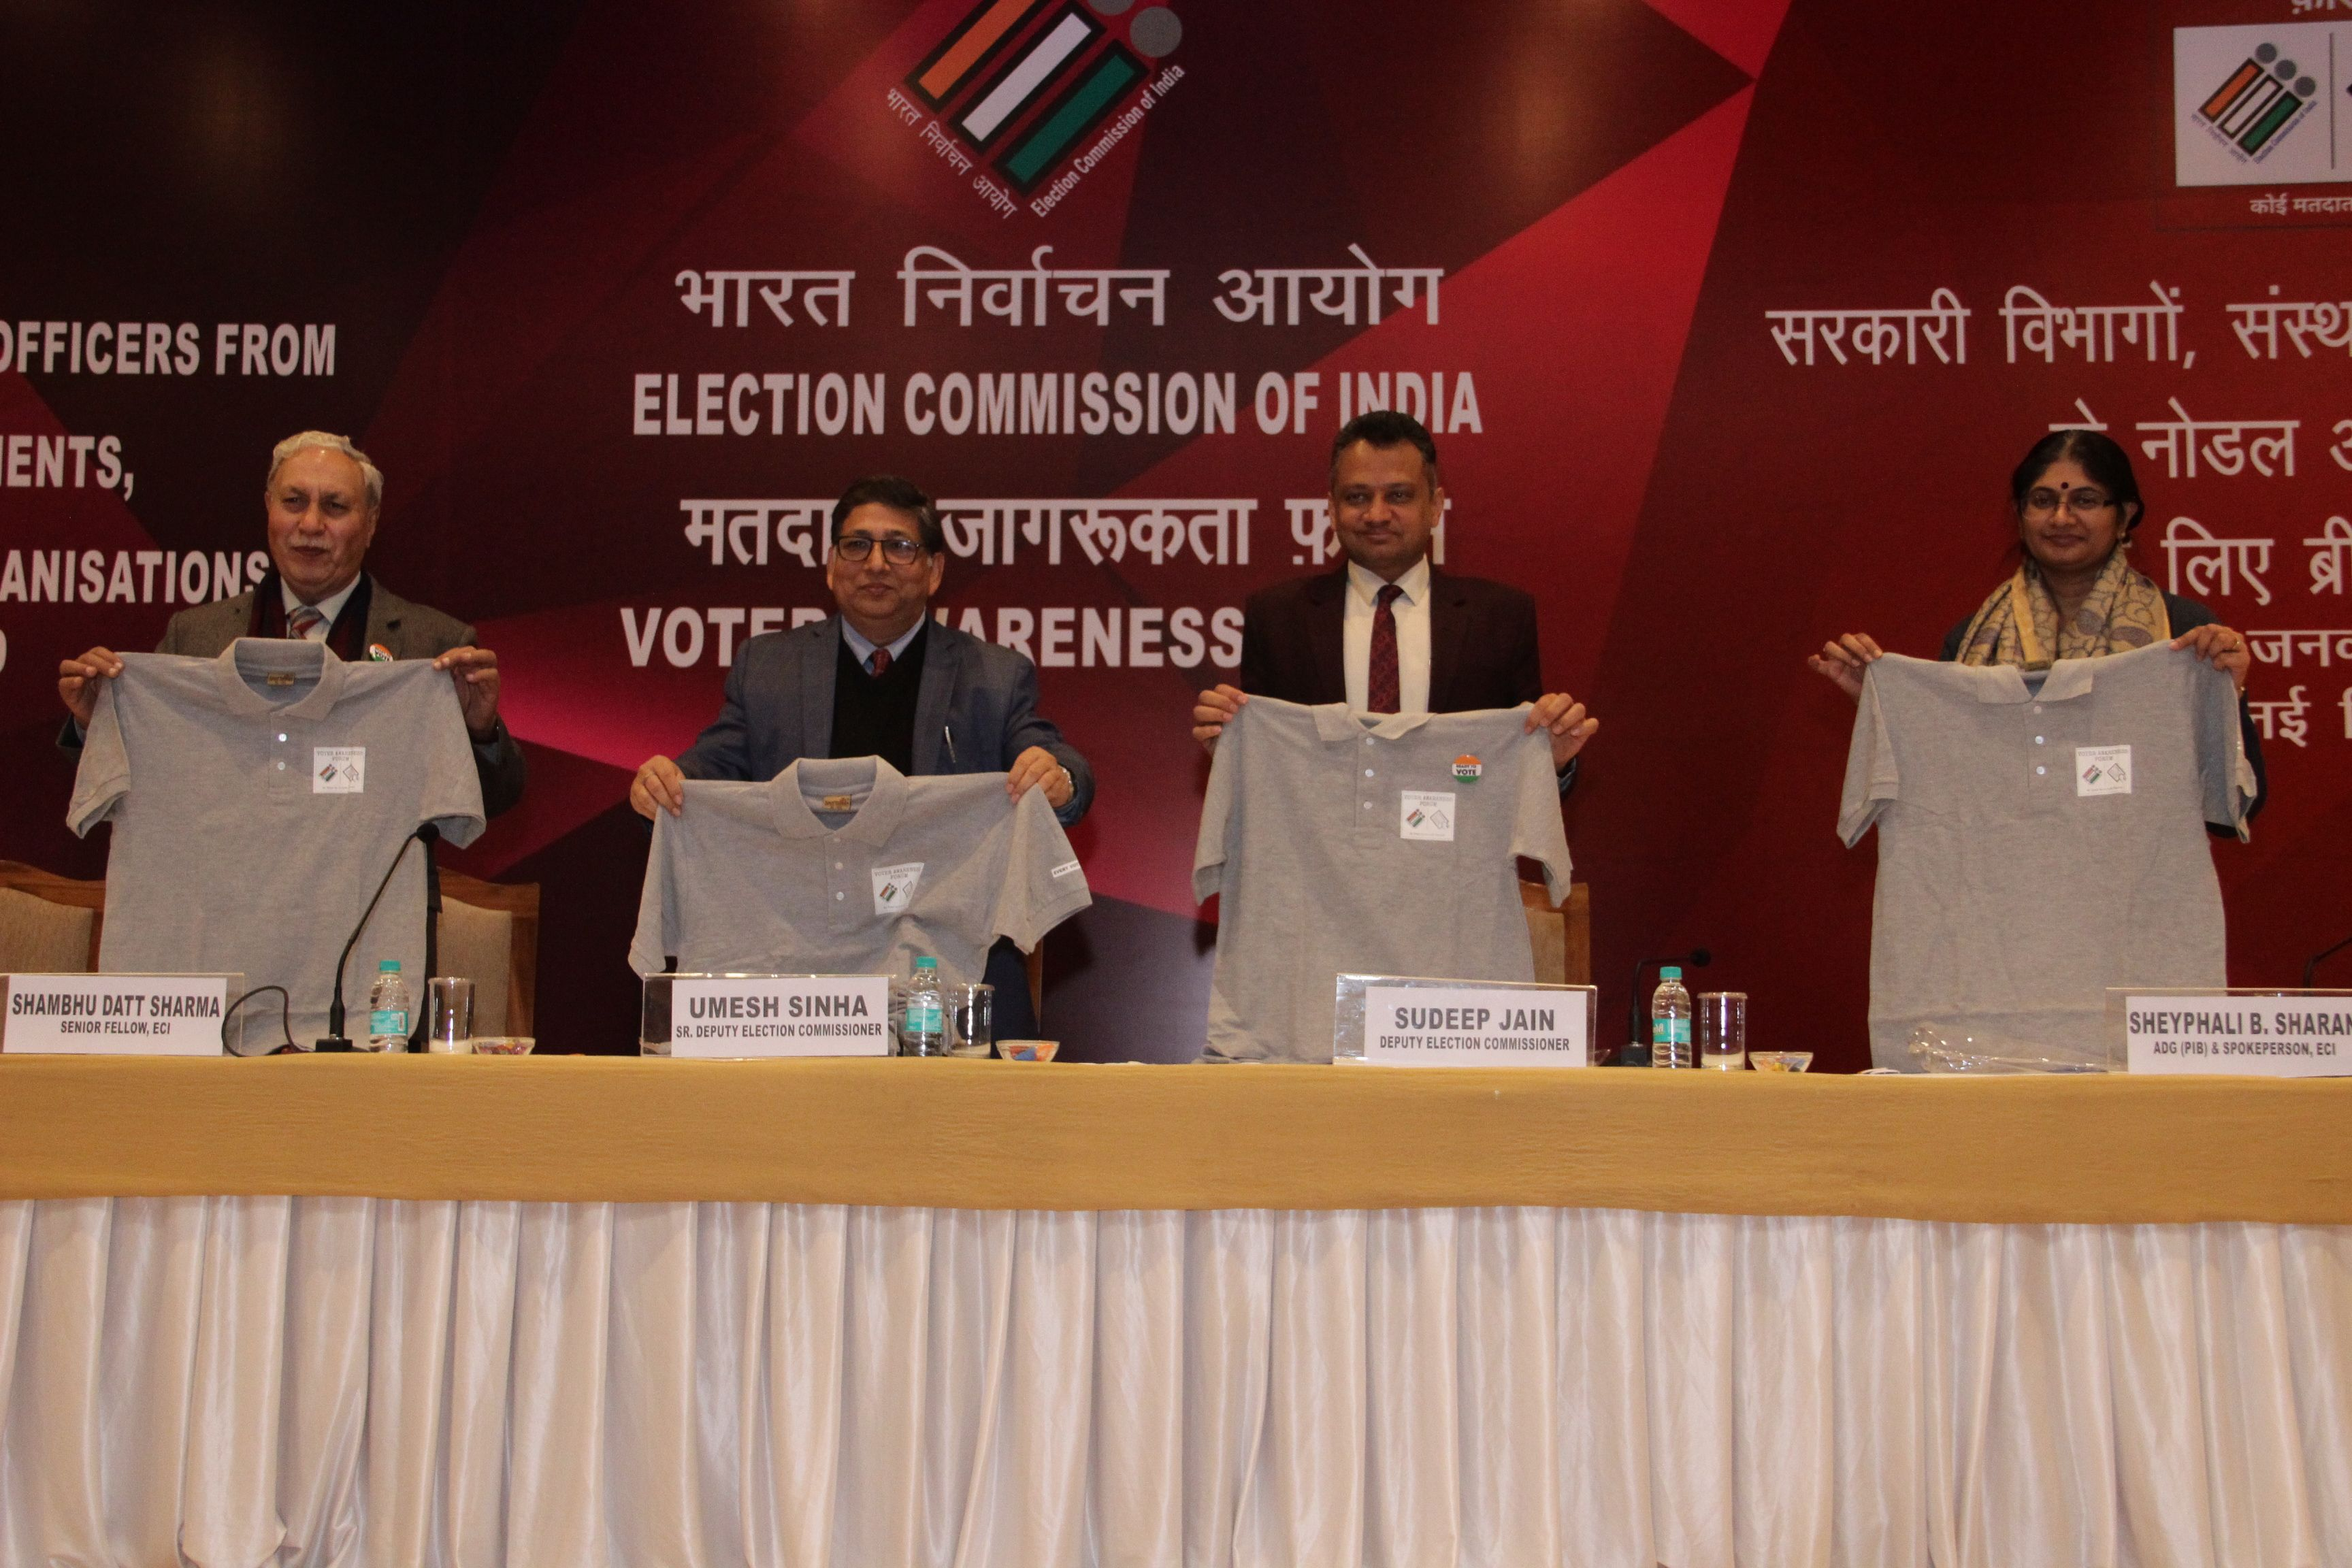 Dignitaries unveil the Tshirt for Voter Awareness Forum